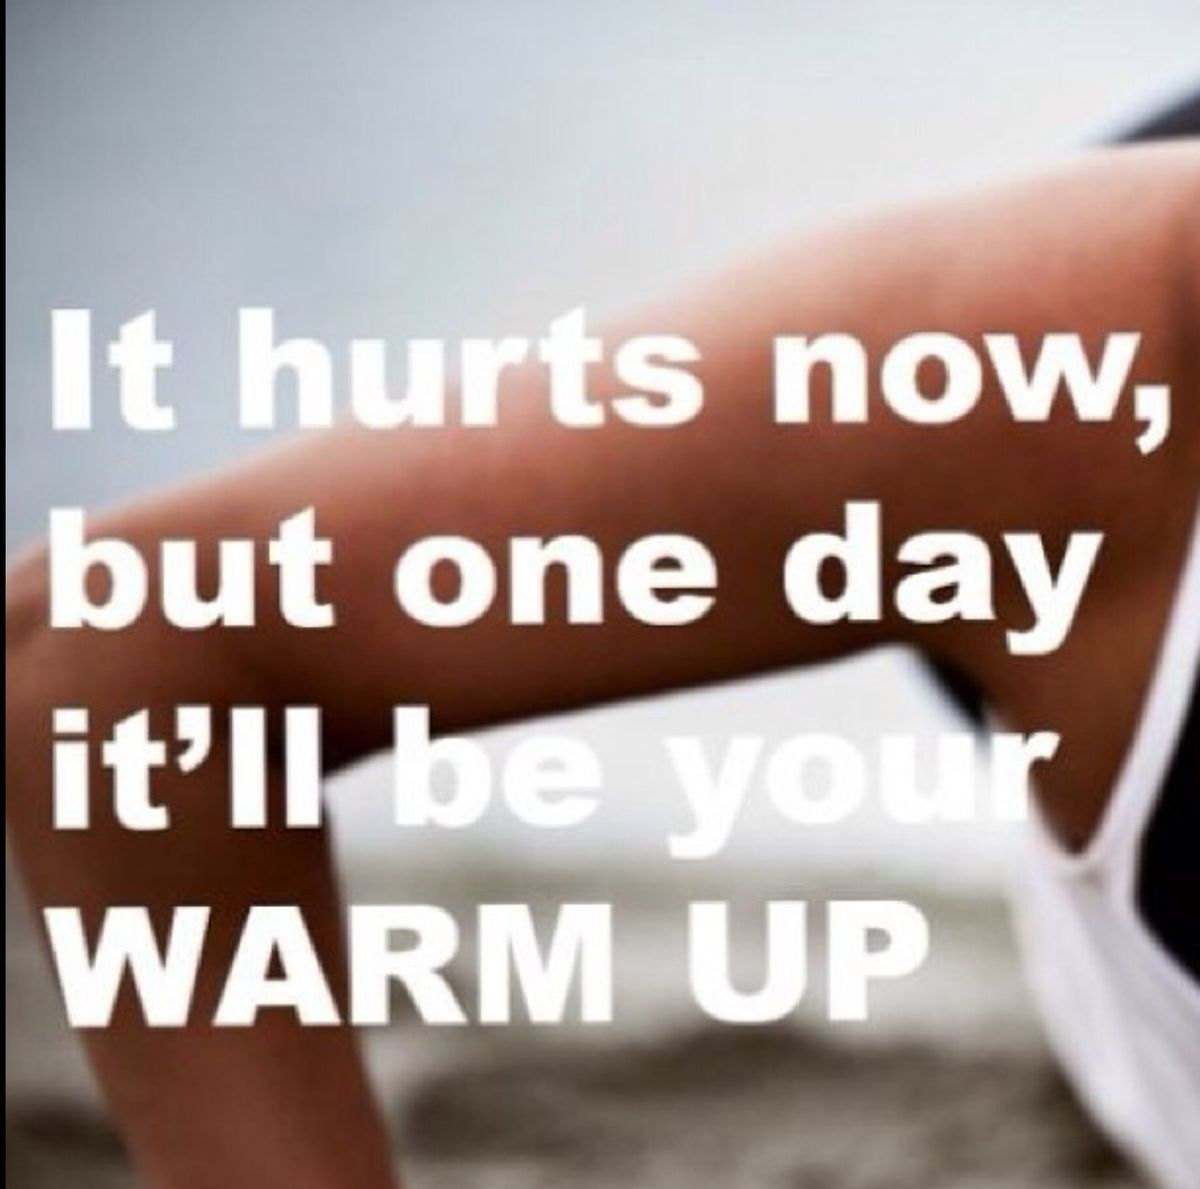 inspirational quotes for working out quotesgram